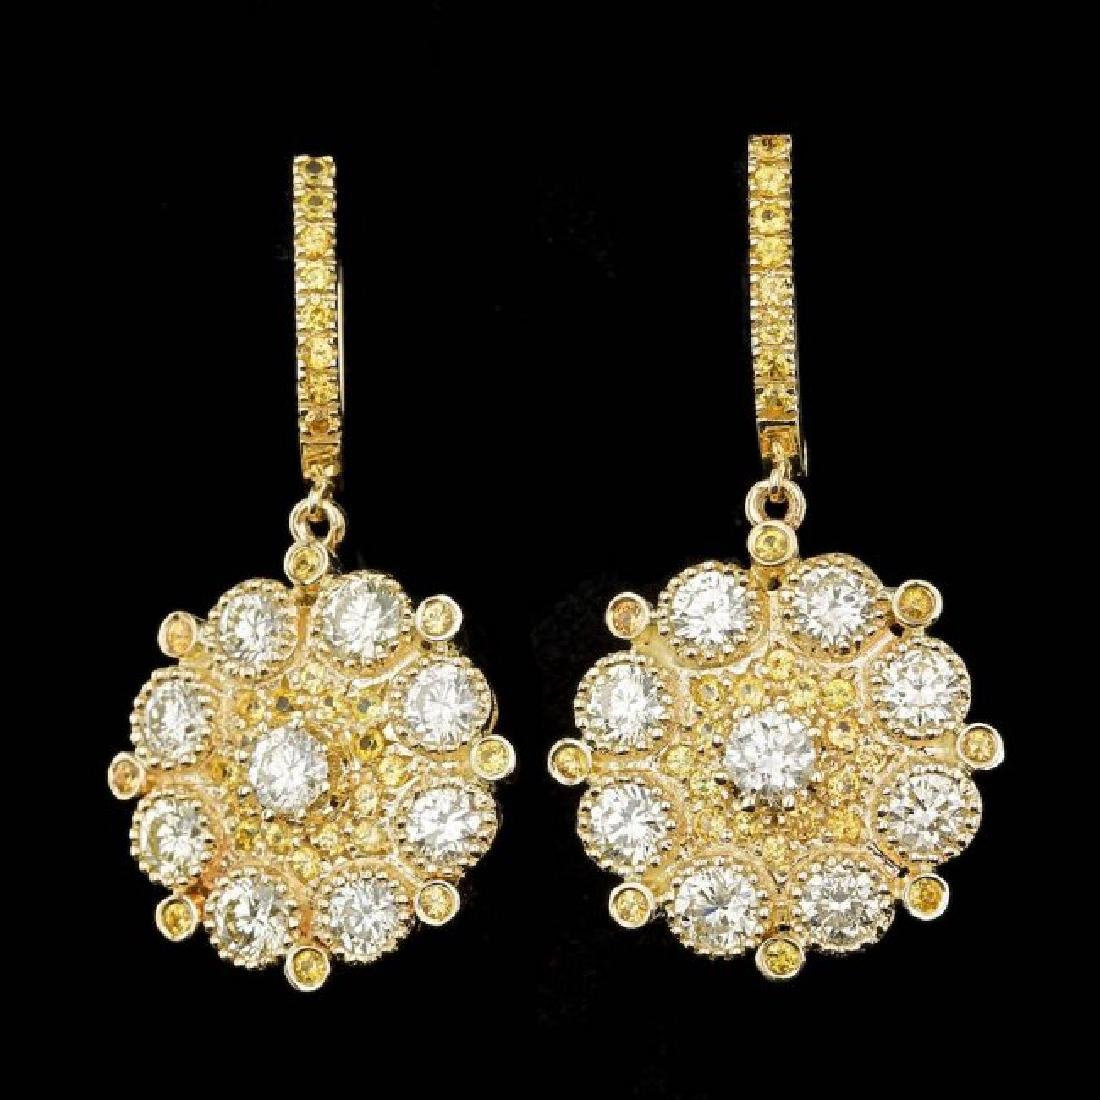 14k Yellow Gold 6.4ct Diamond Earrings